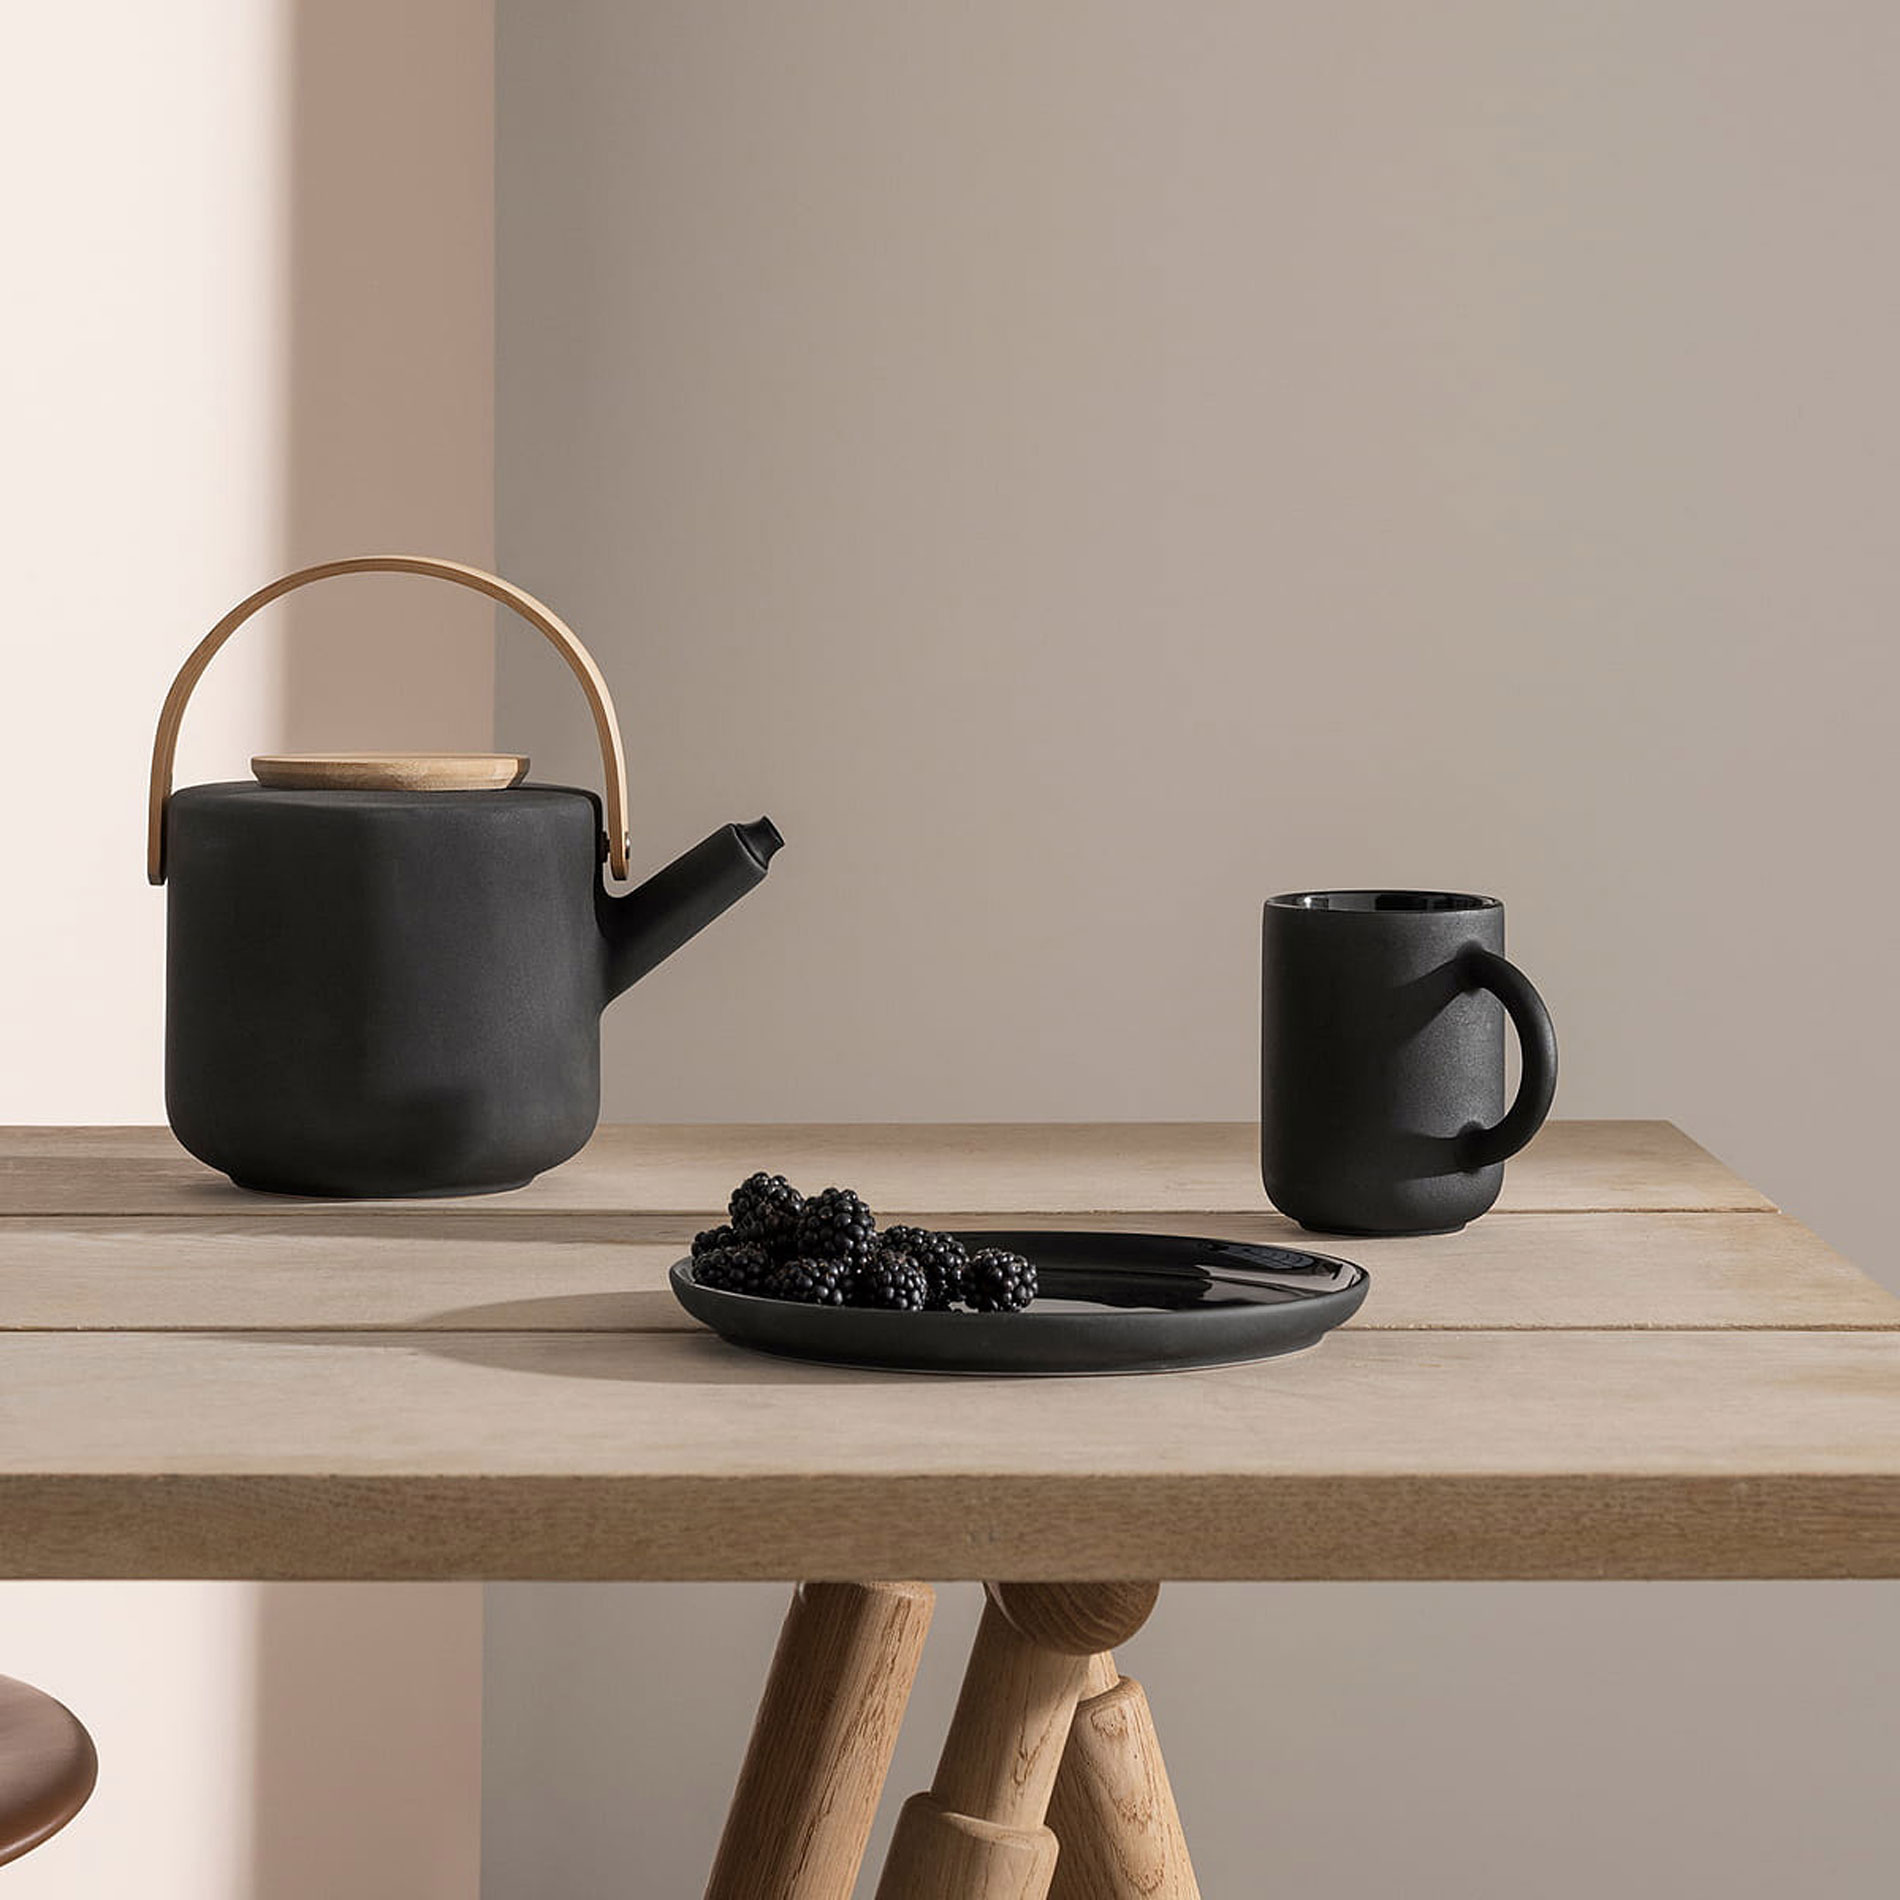 Theo Stelton design teapots living